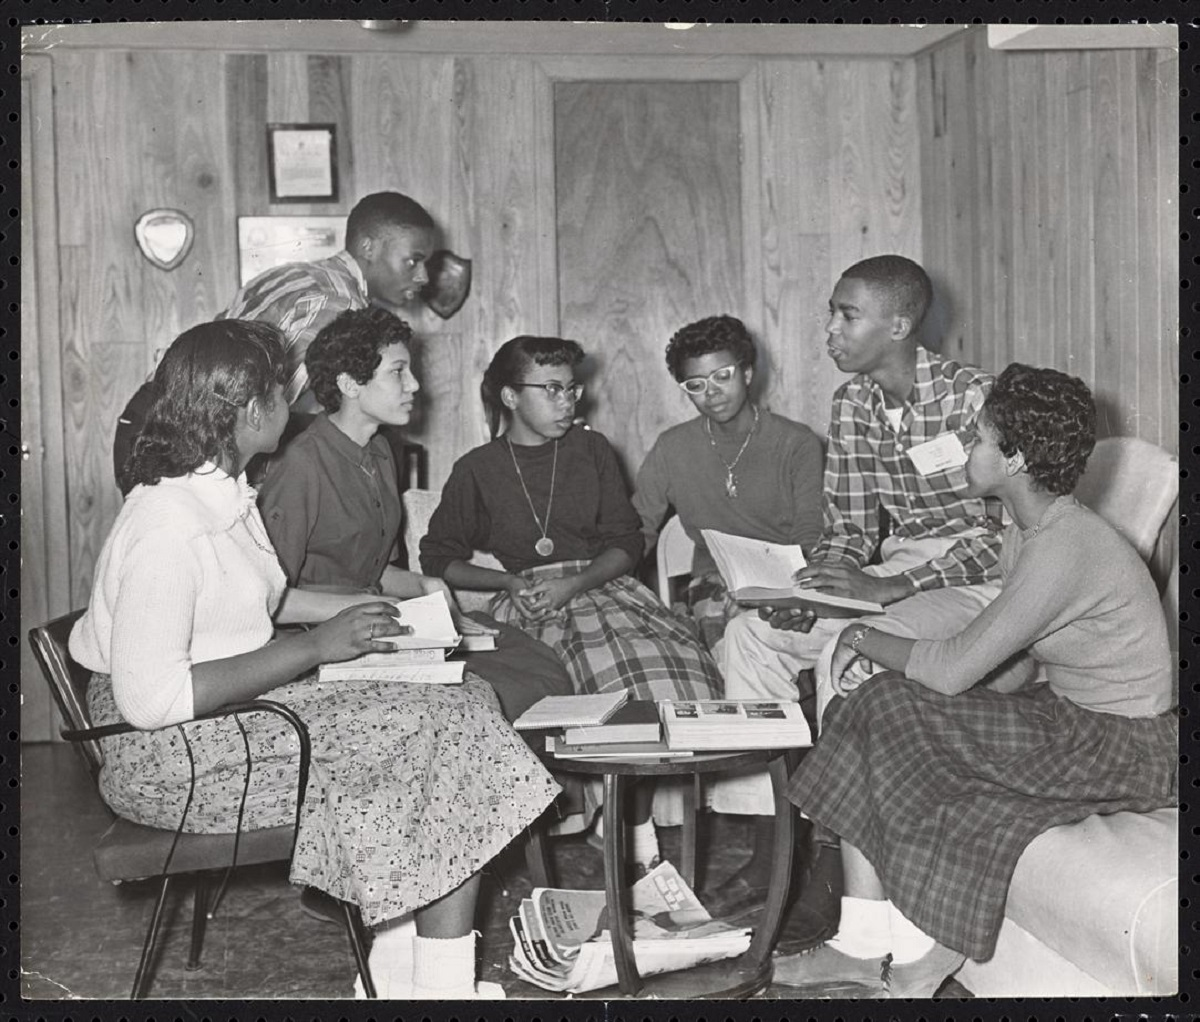 Photo courtesy of:  The National Museum of African American History + Culture